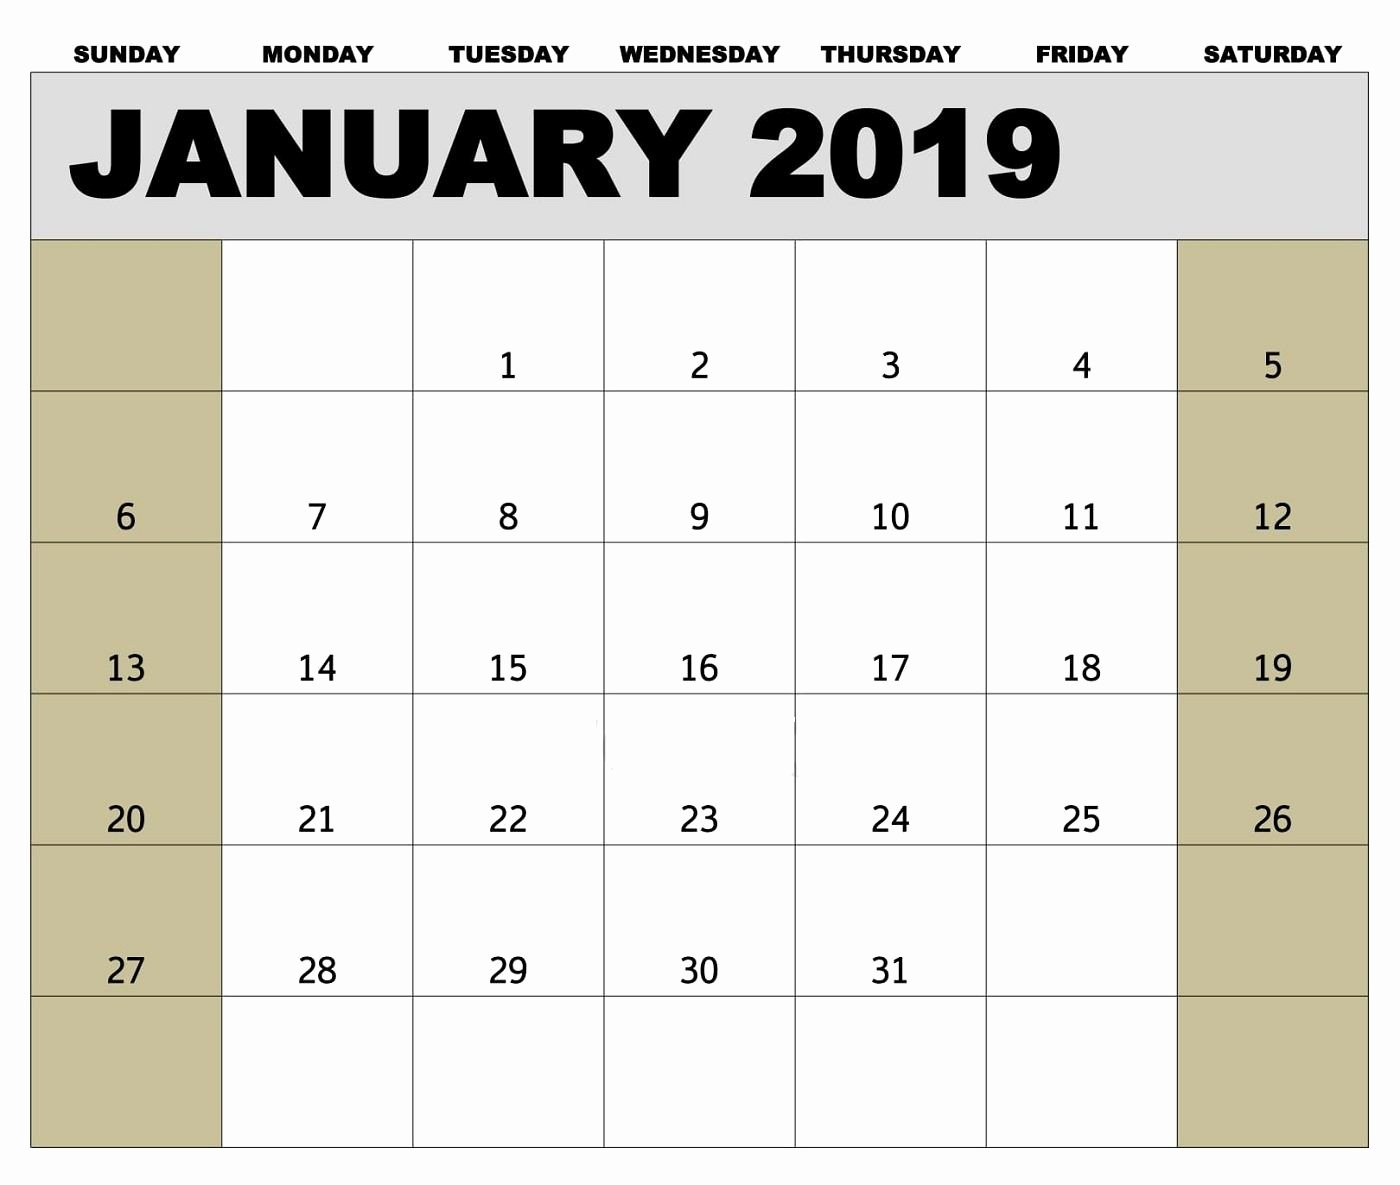 Excel Payroll Template 2019 Luxury 2019 Payroll Calendar Printable